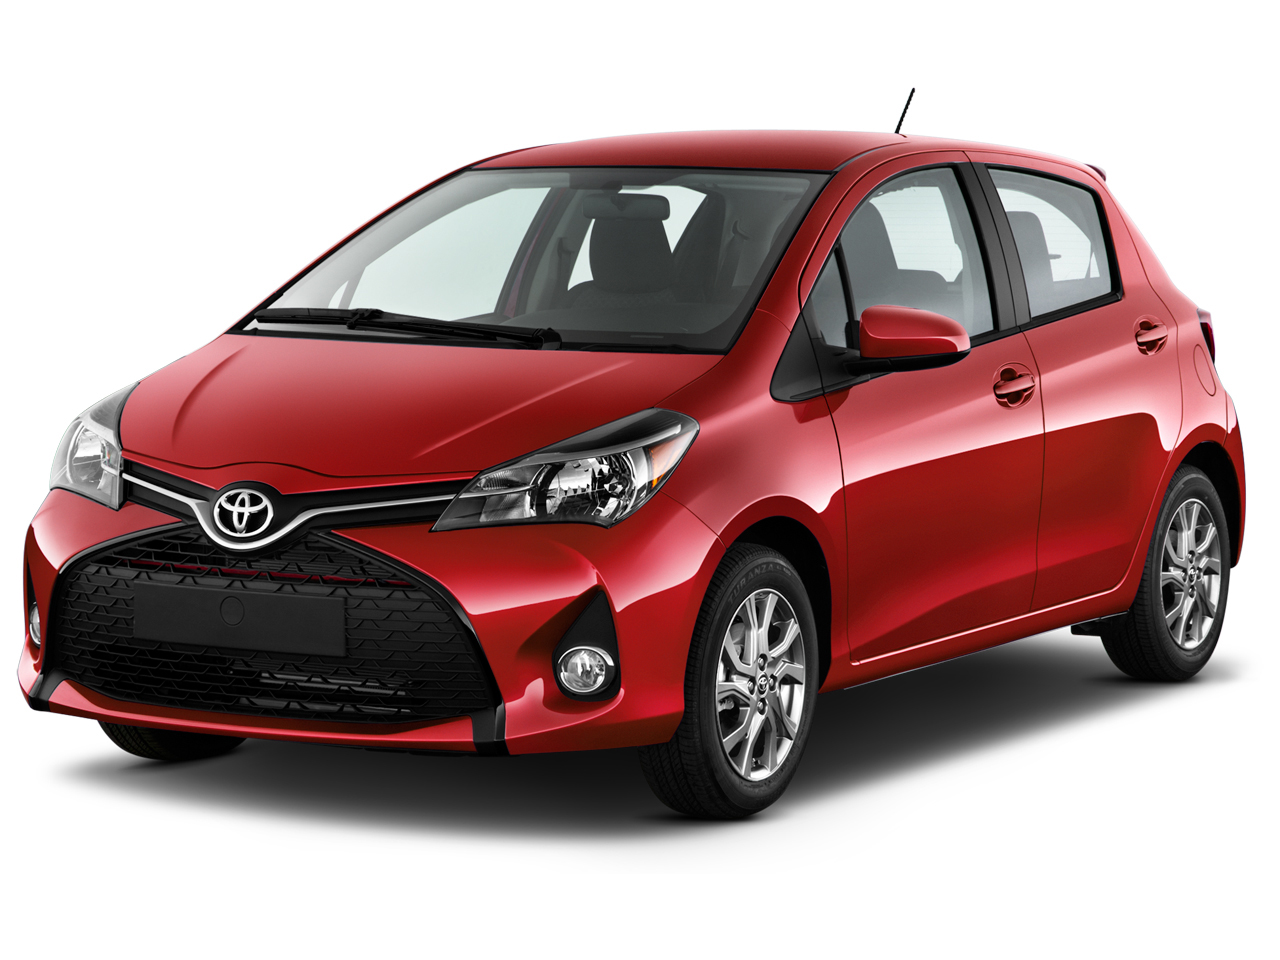 2017 toyota yaris quality review the car connection. Black Bedroom Furniture Sets. Home Design Ideas